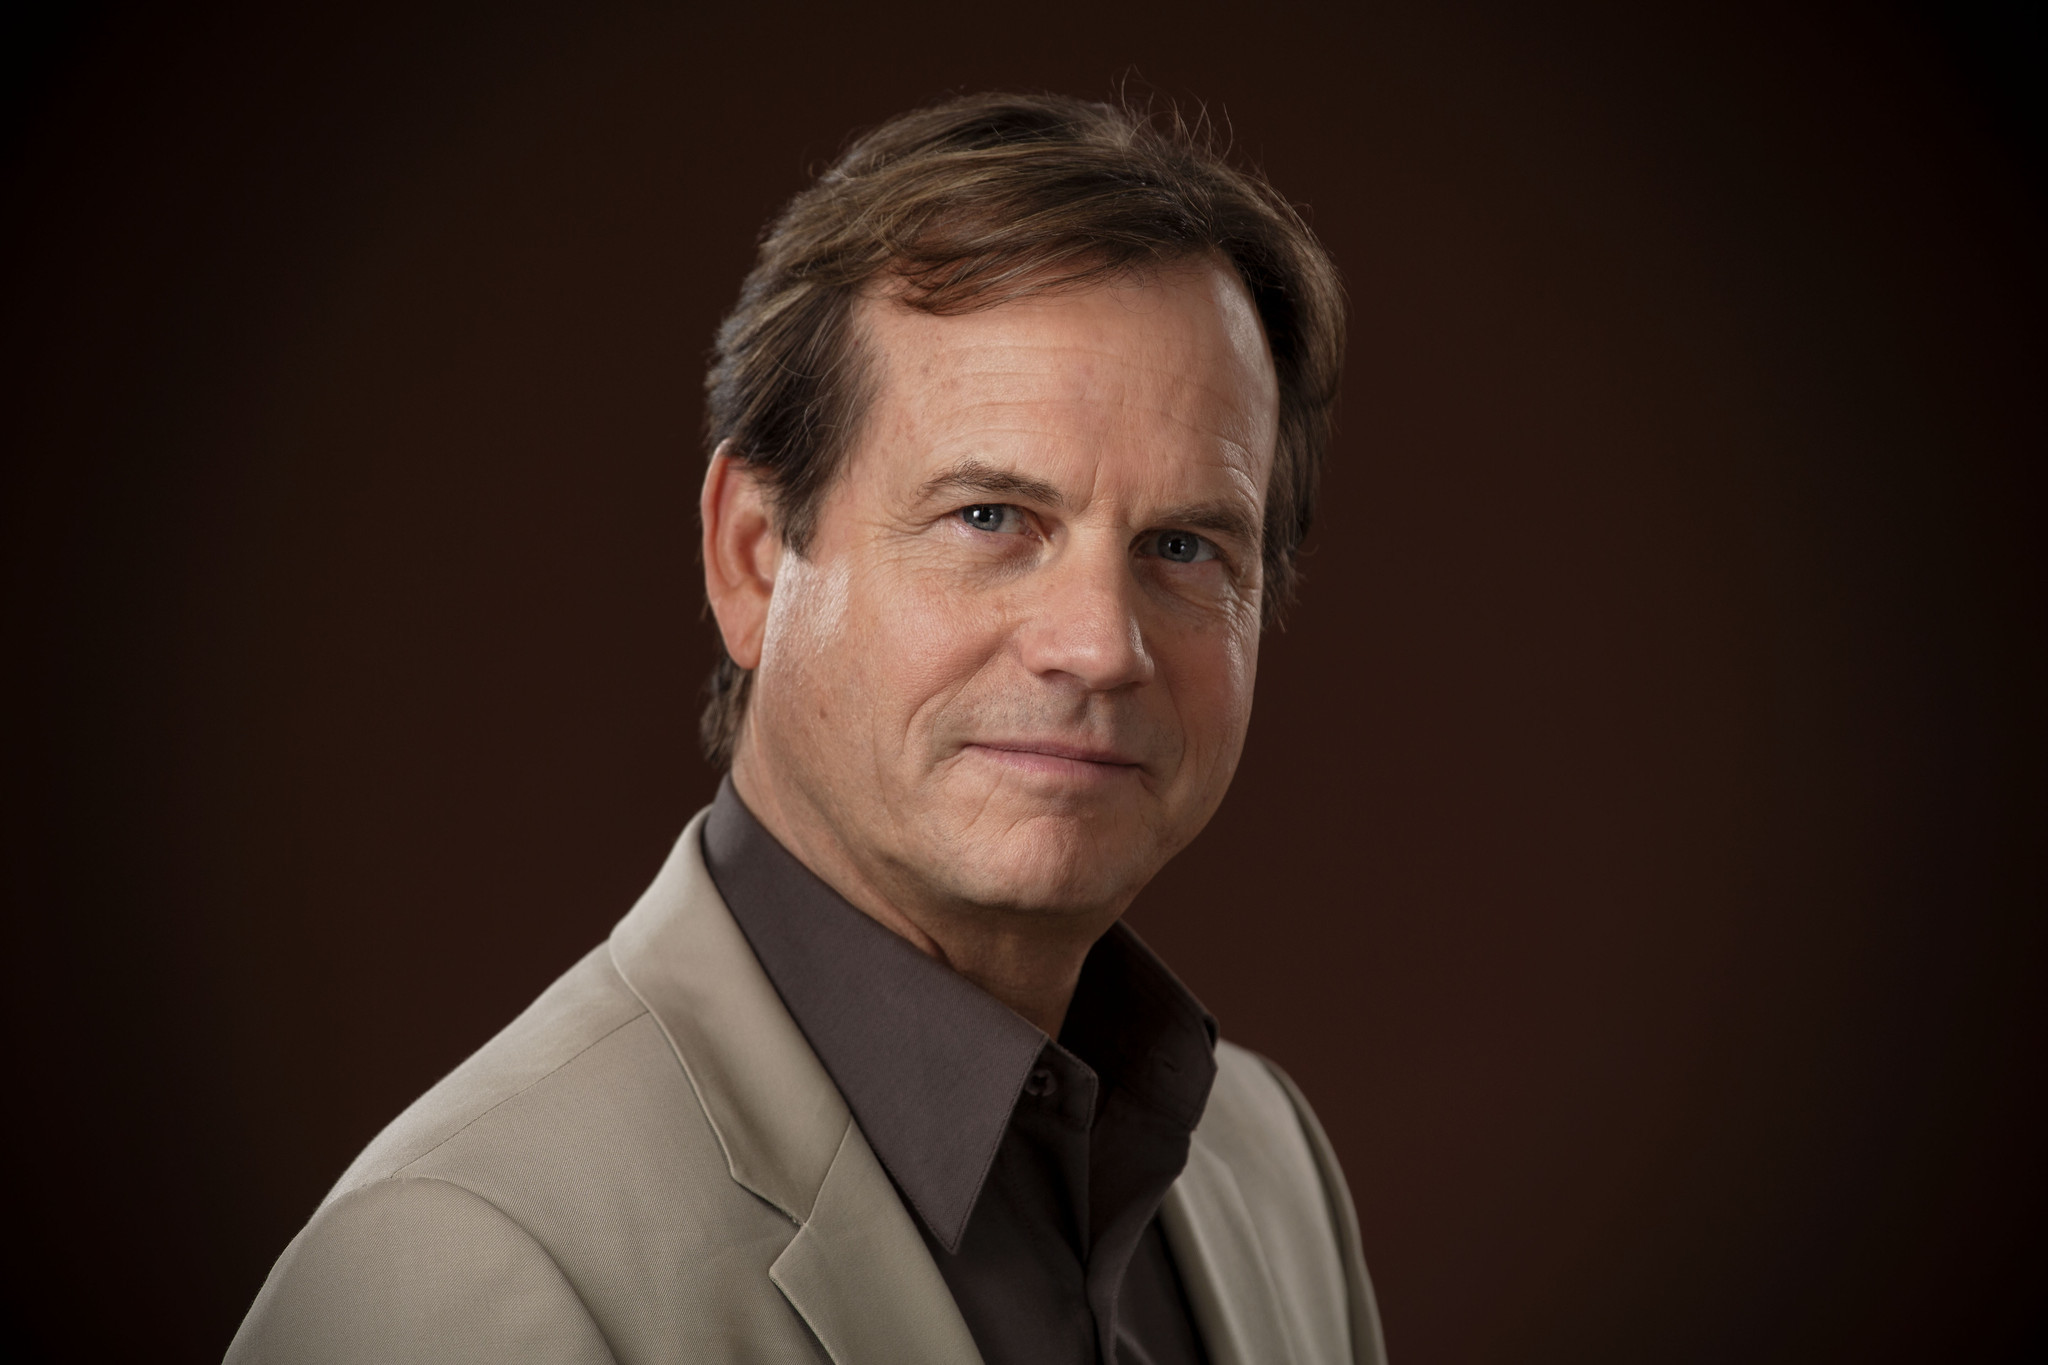 Emmy chat: Join Bill Paxton for 'Texas Rising' today at 3 - LA Times